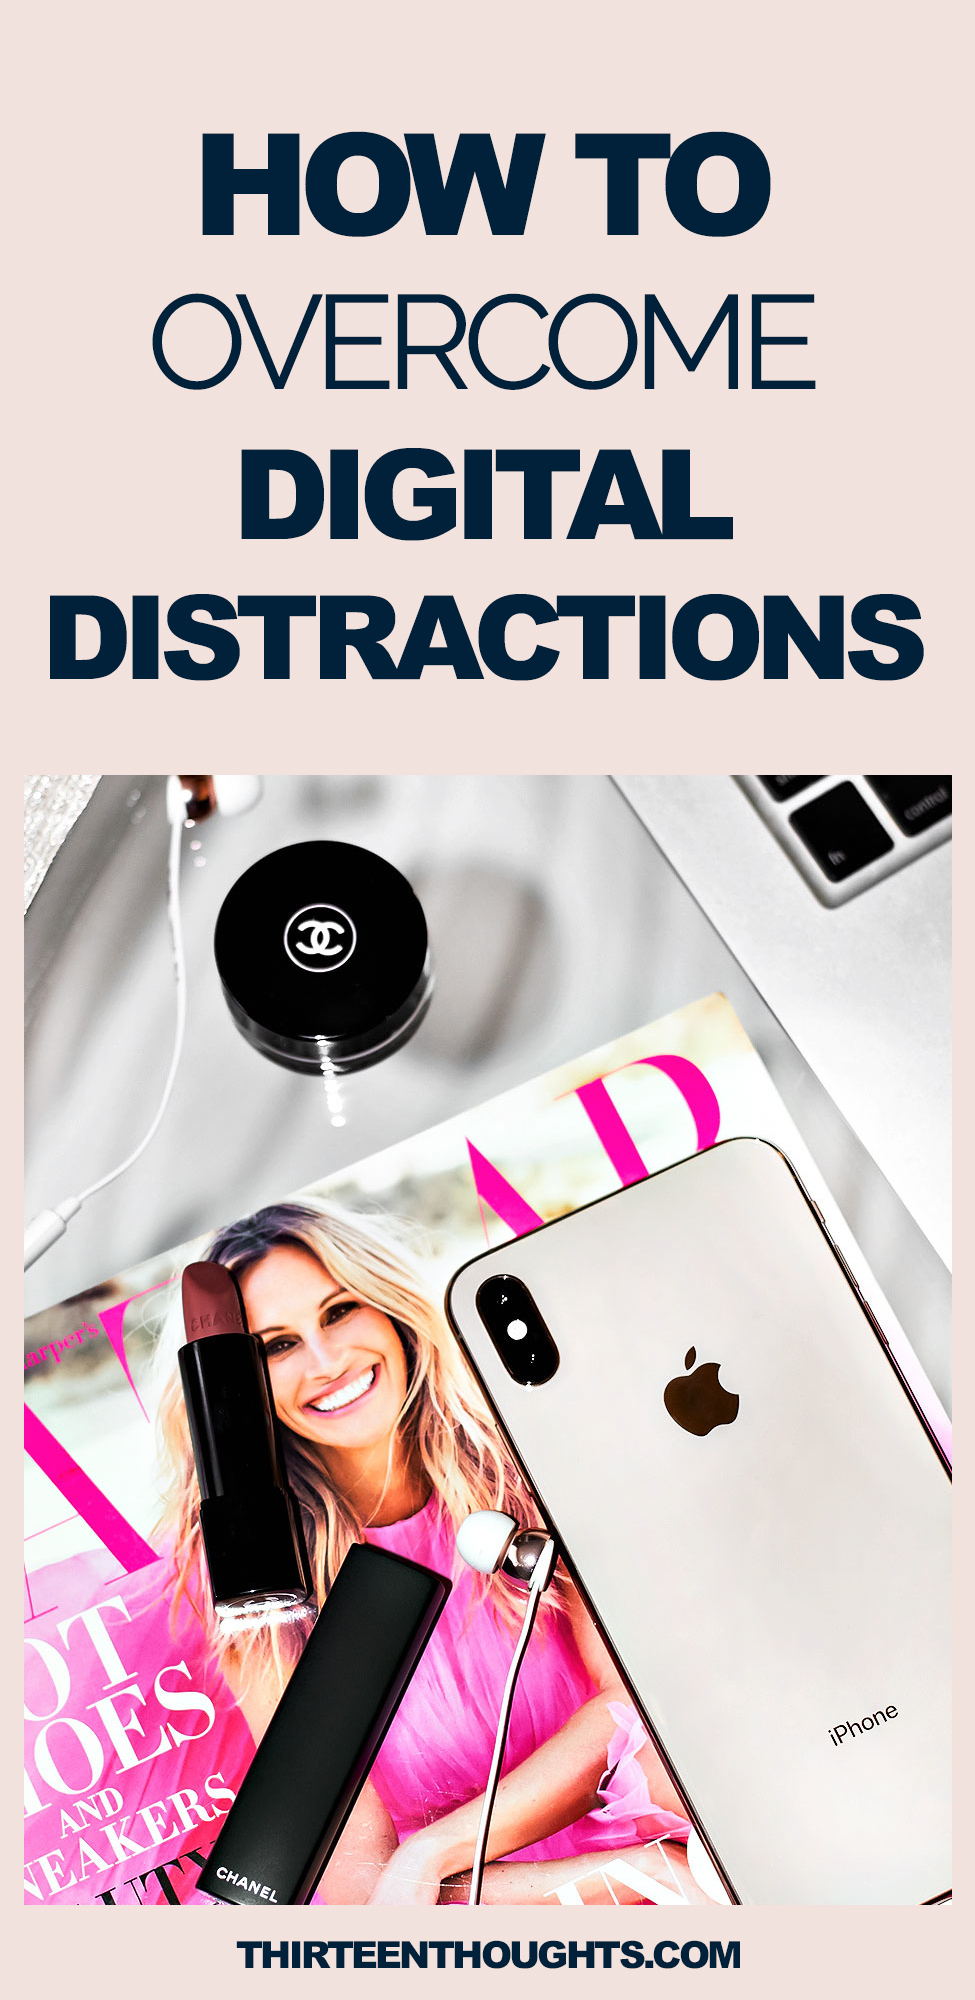 How to Overcome Digital Distractions